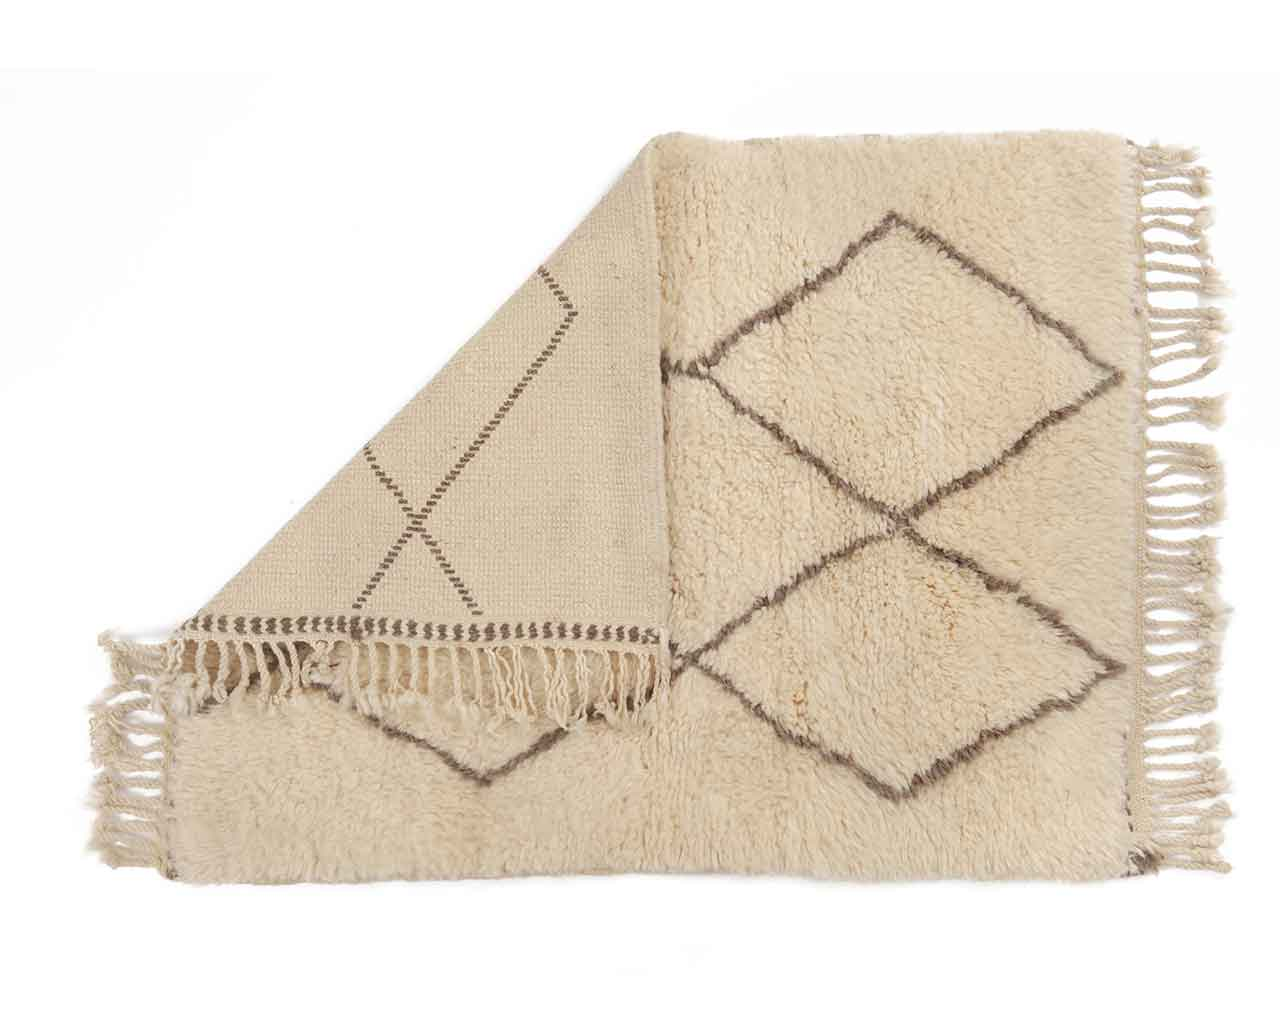 blogger recommendation for woolen carpets white 1